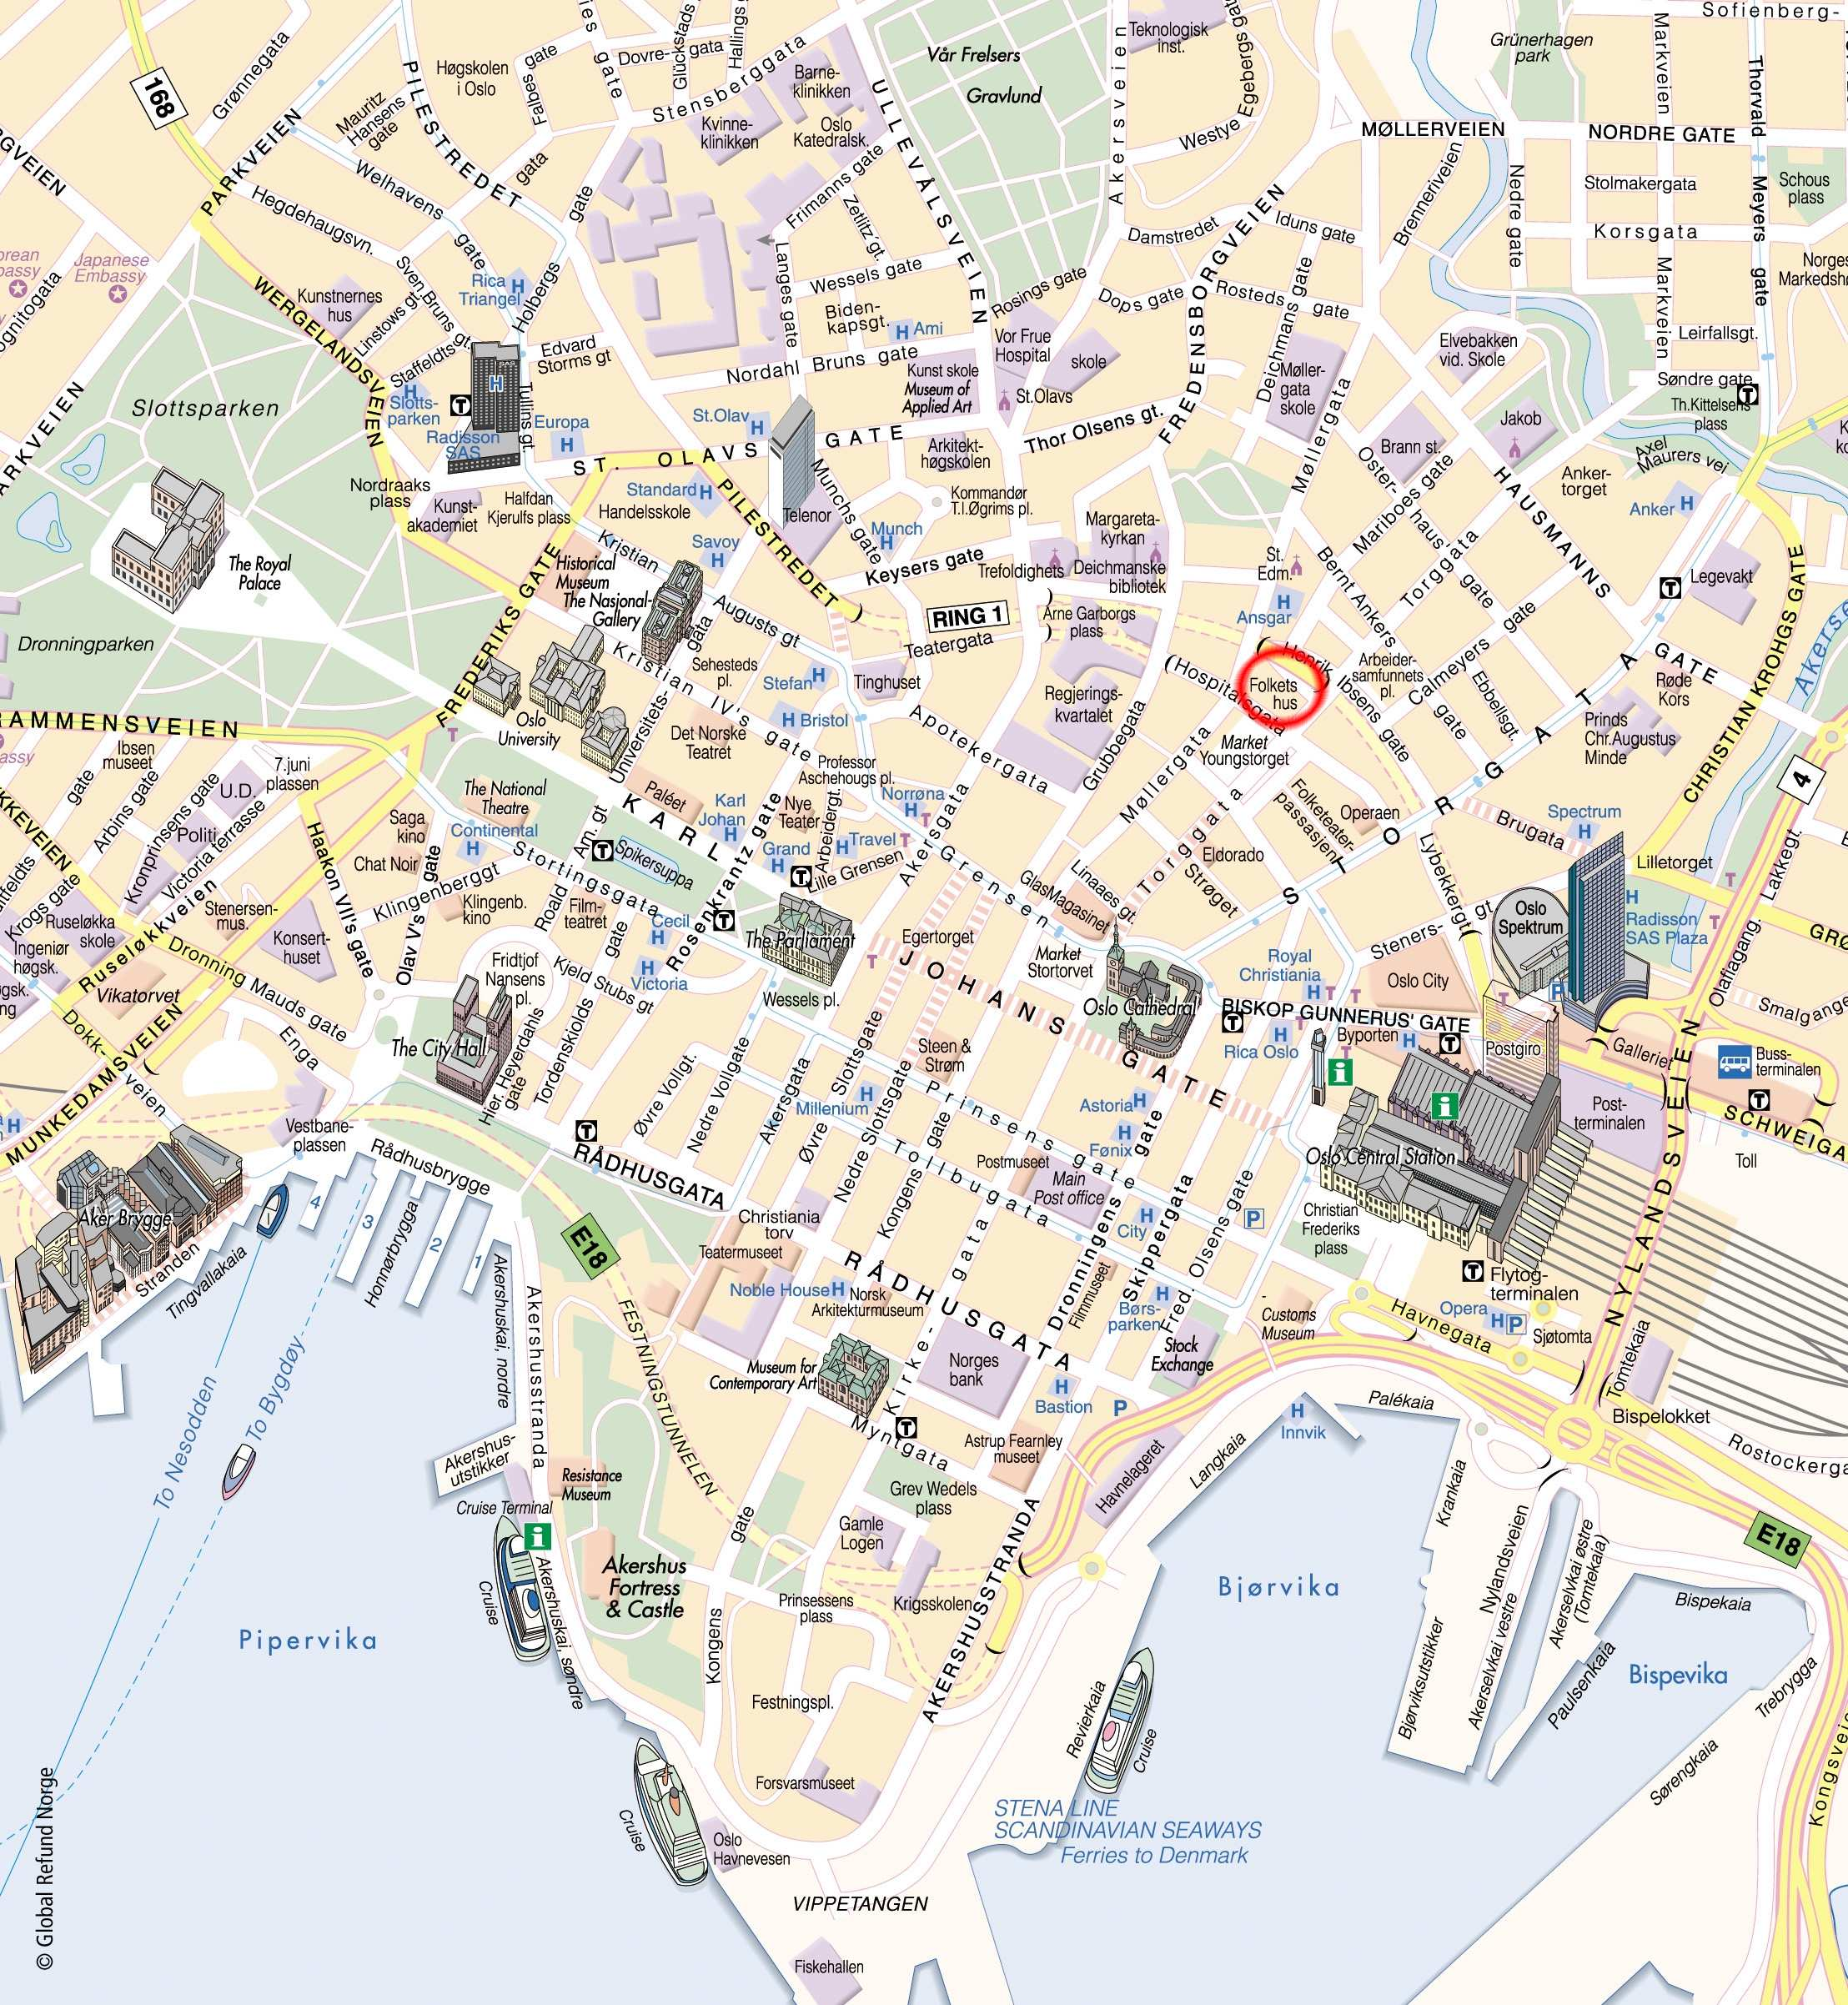 Large Oslo Maps For Free Download And Print High Resolution And